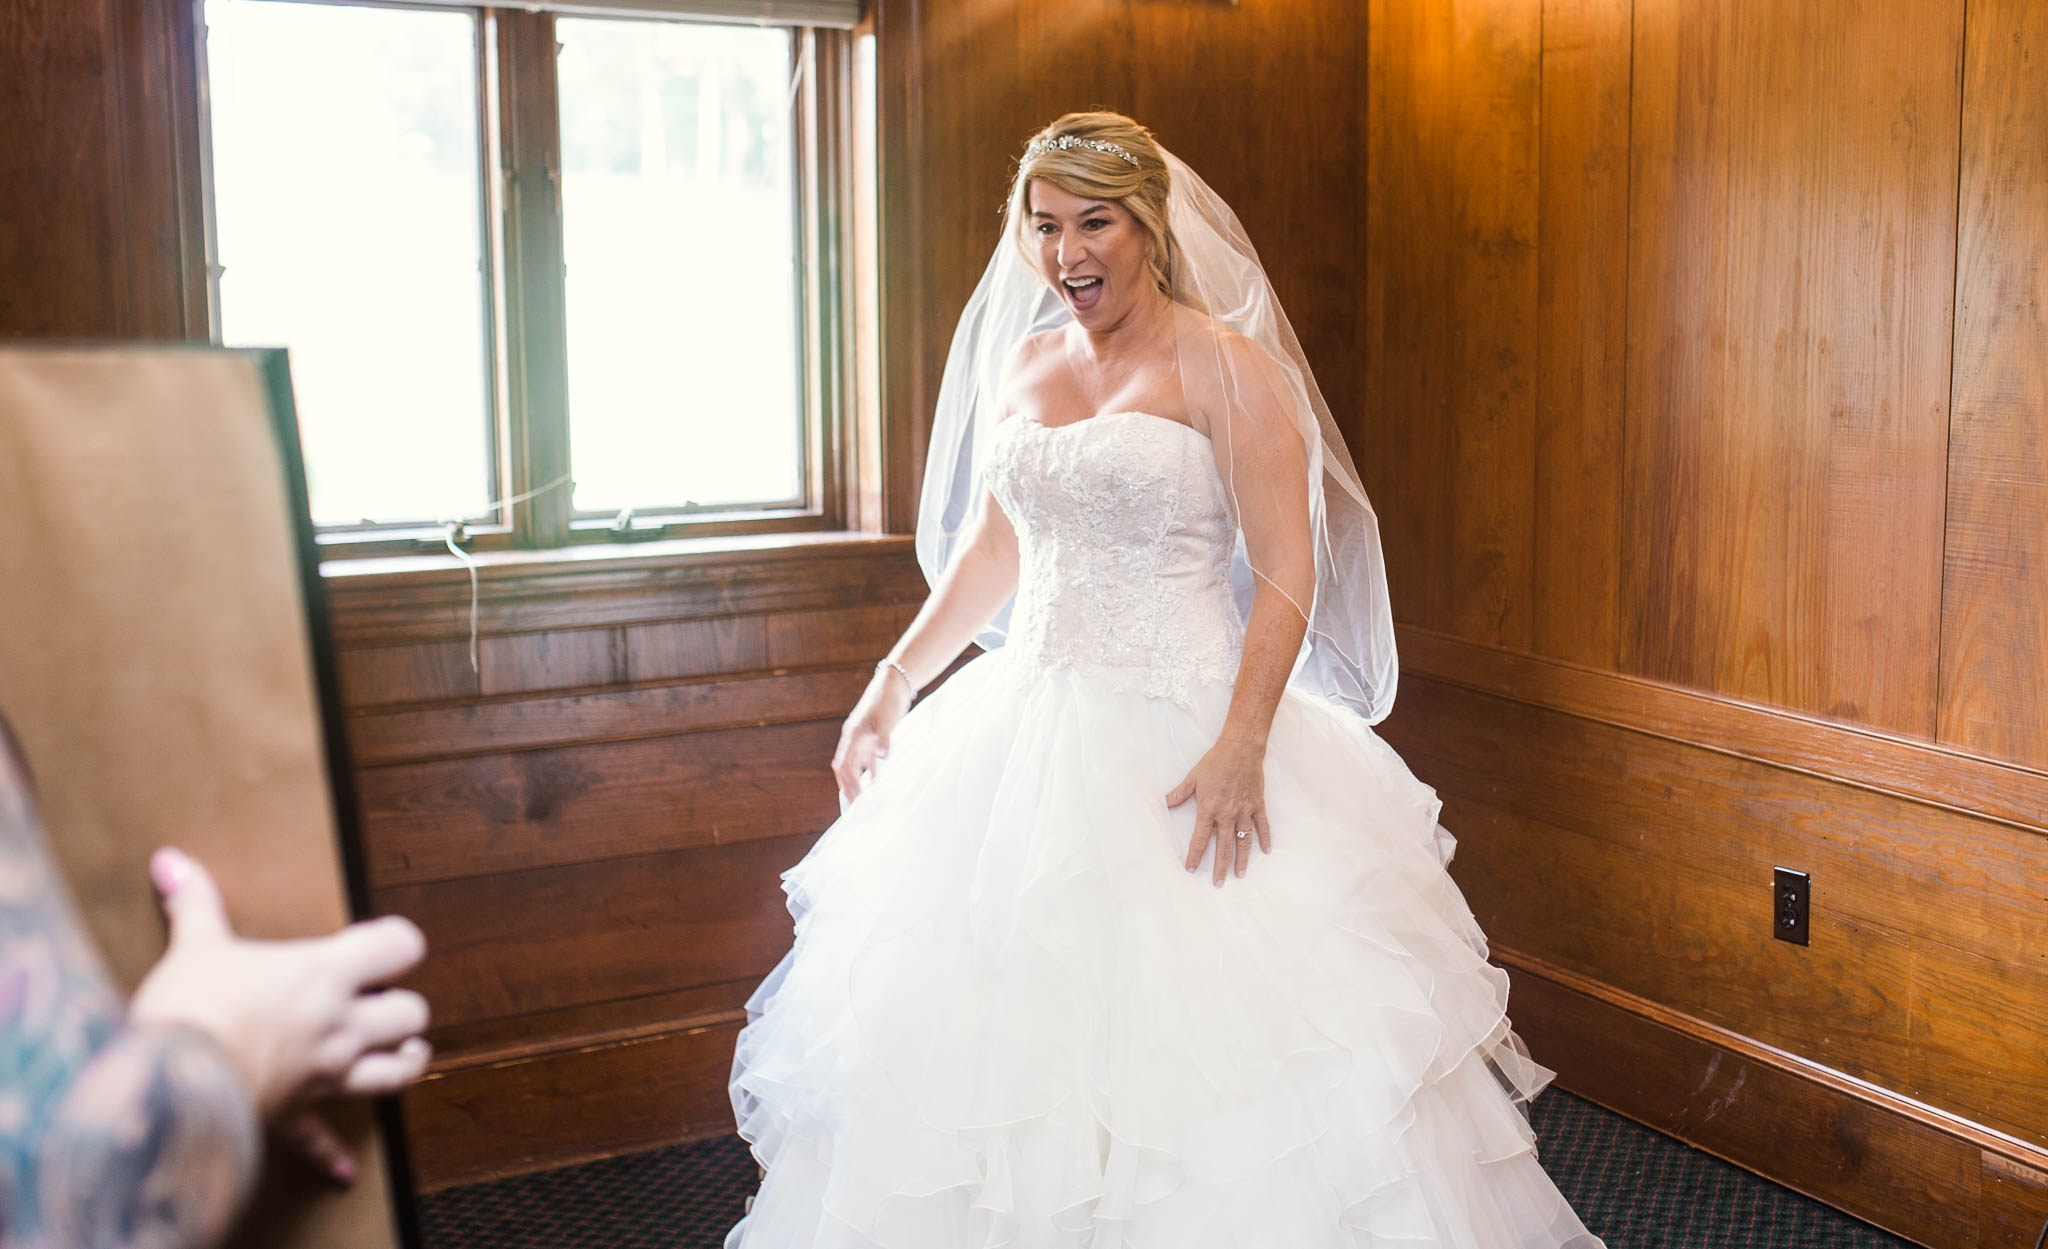 Bride seeing herself in the ball gown wedding dress for the first time - Dona + Doug - MacGregor Downs Country Club in Cary, NC - Raleigh Wedding Photographer